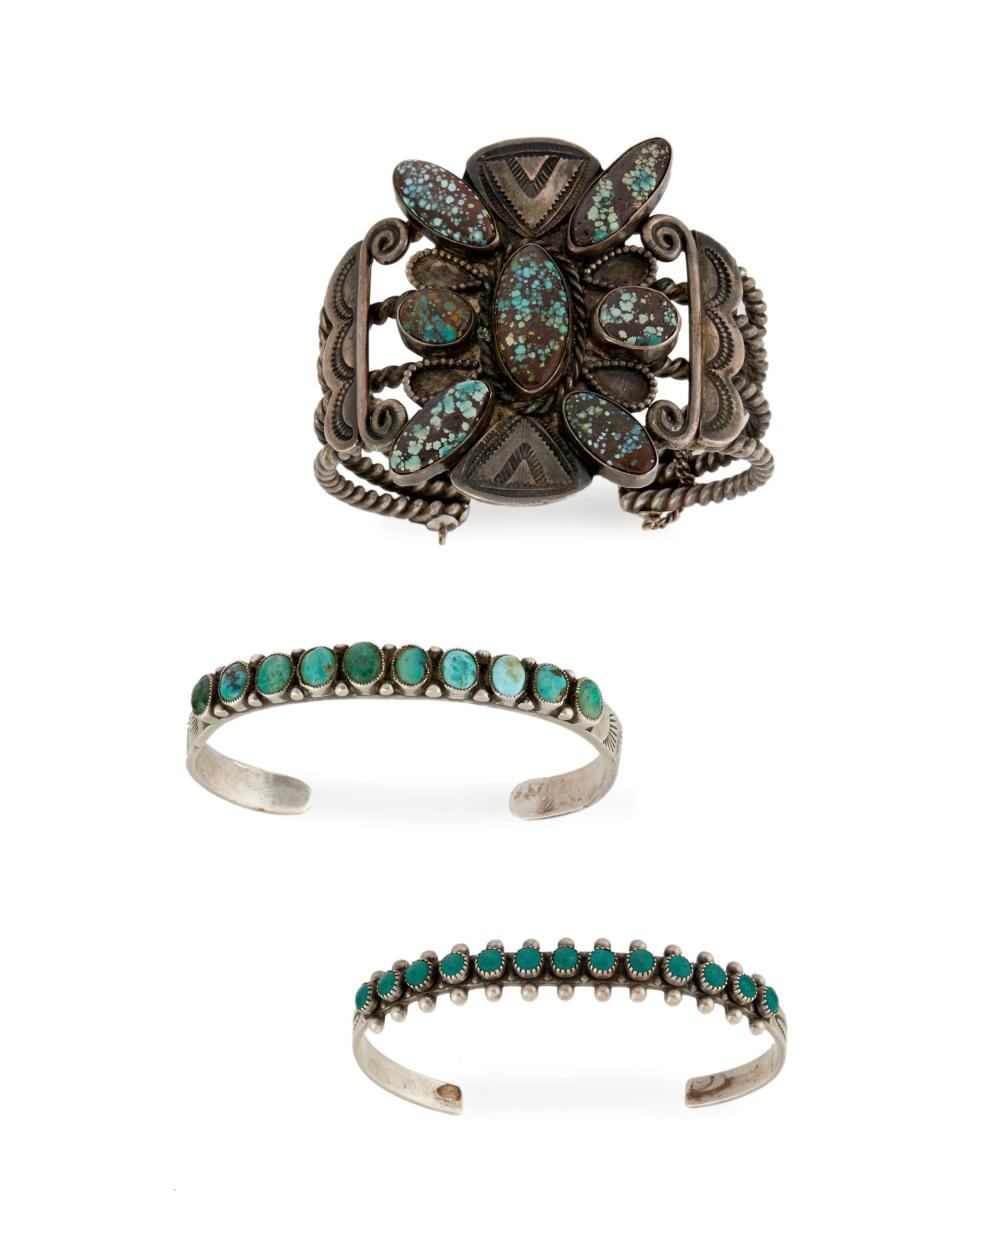 Three silver and turquoise cuff bracelets